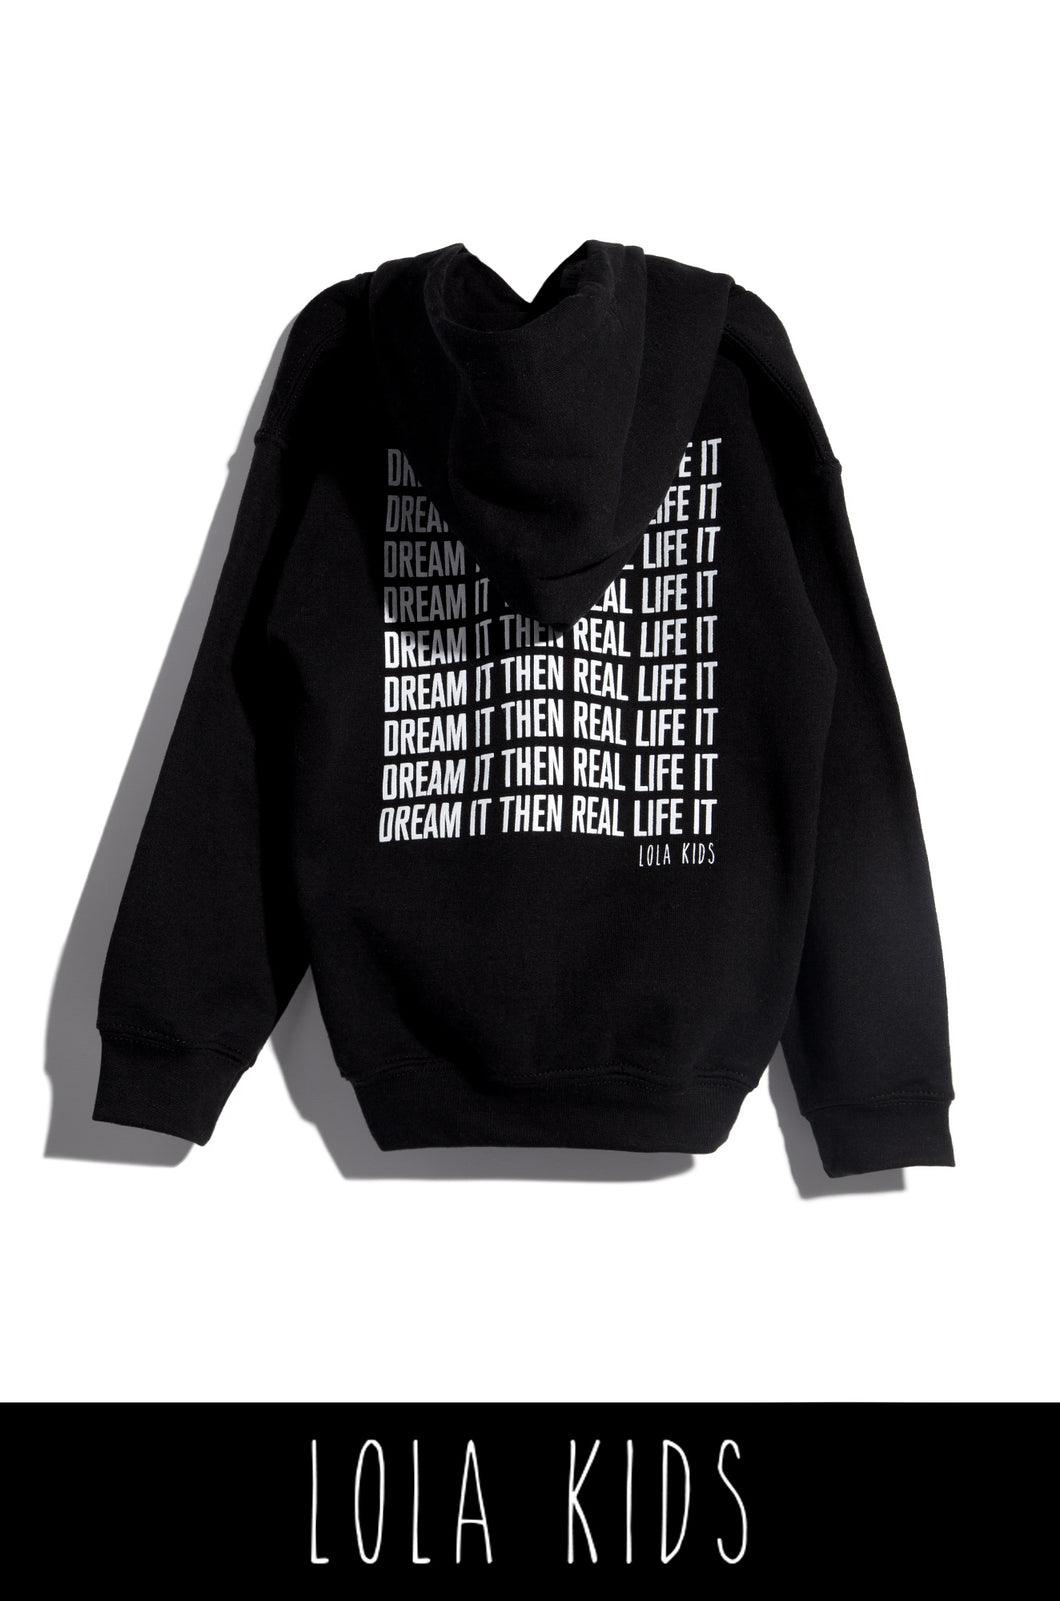 Dream It Then Real Life It Kids Hoodie - Black